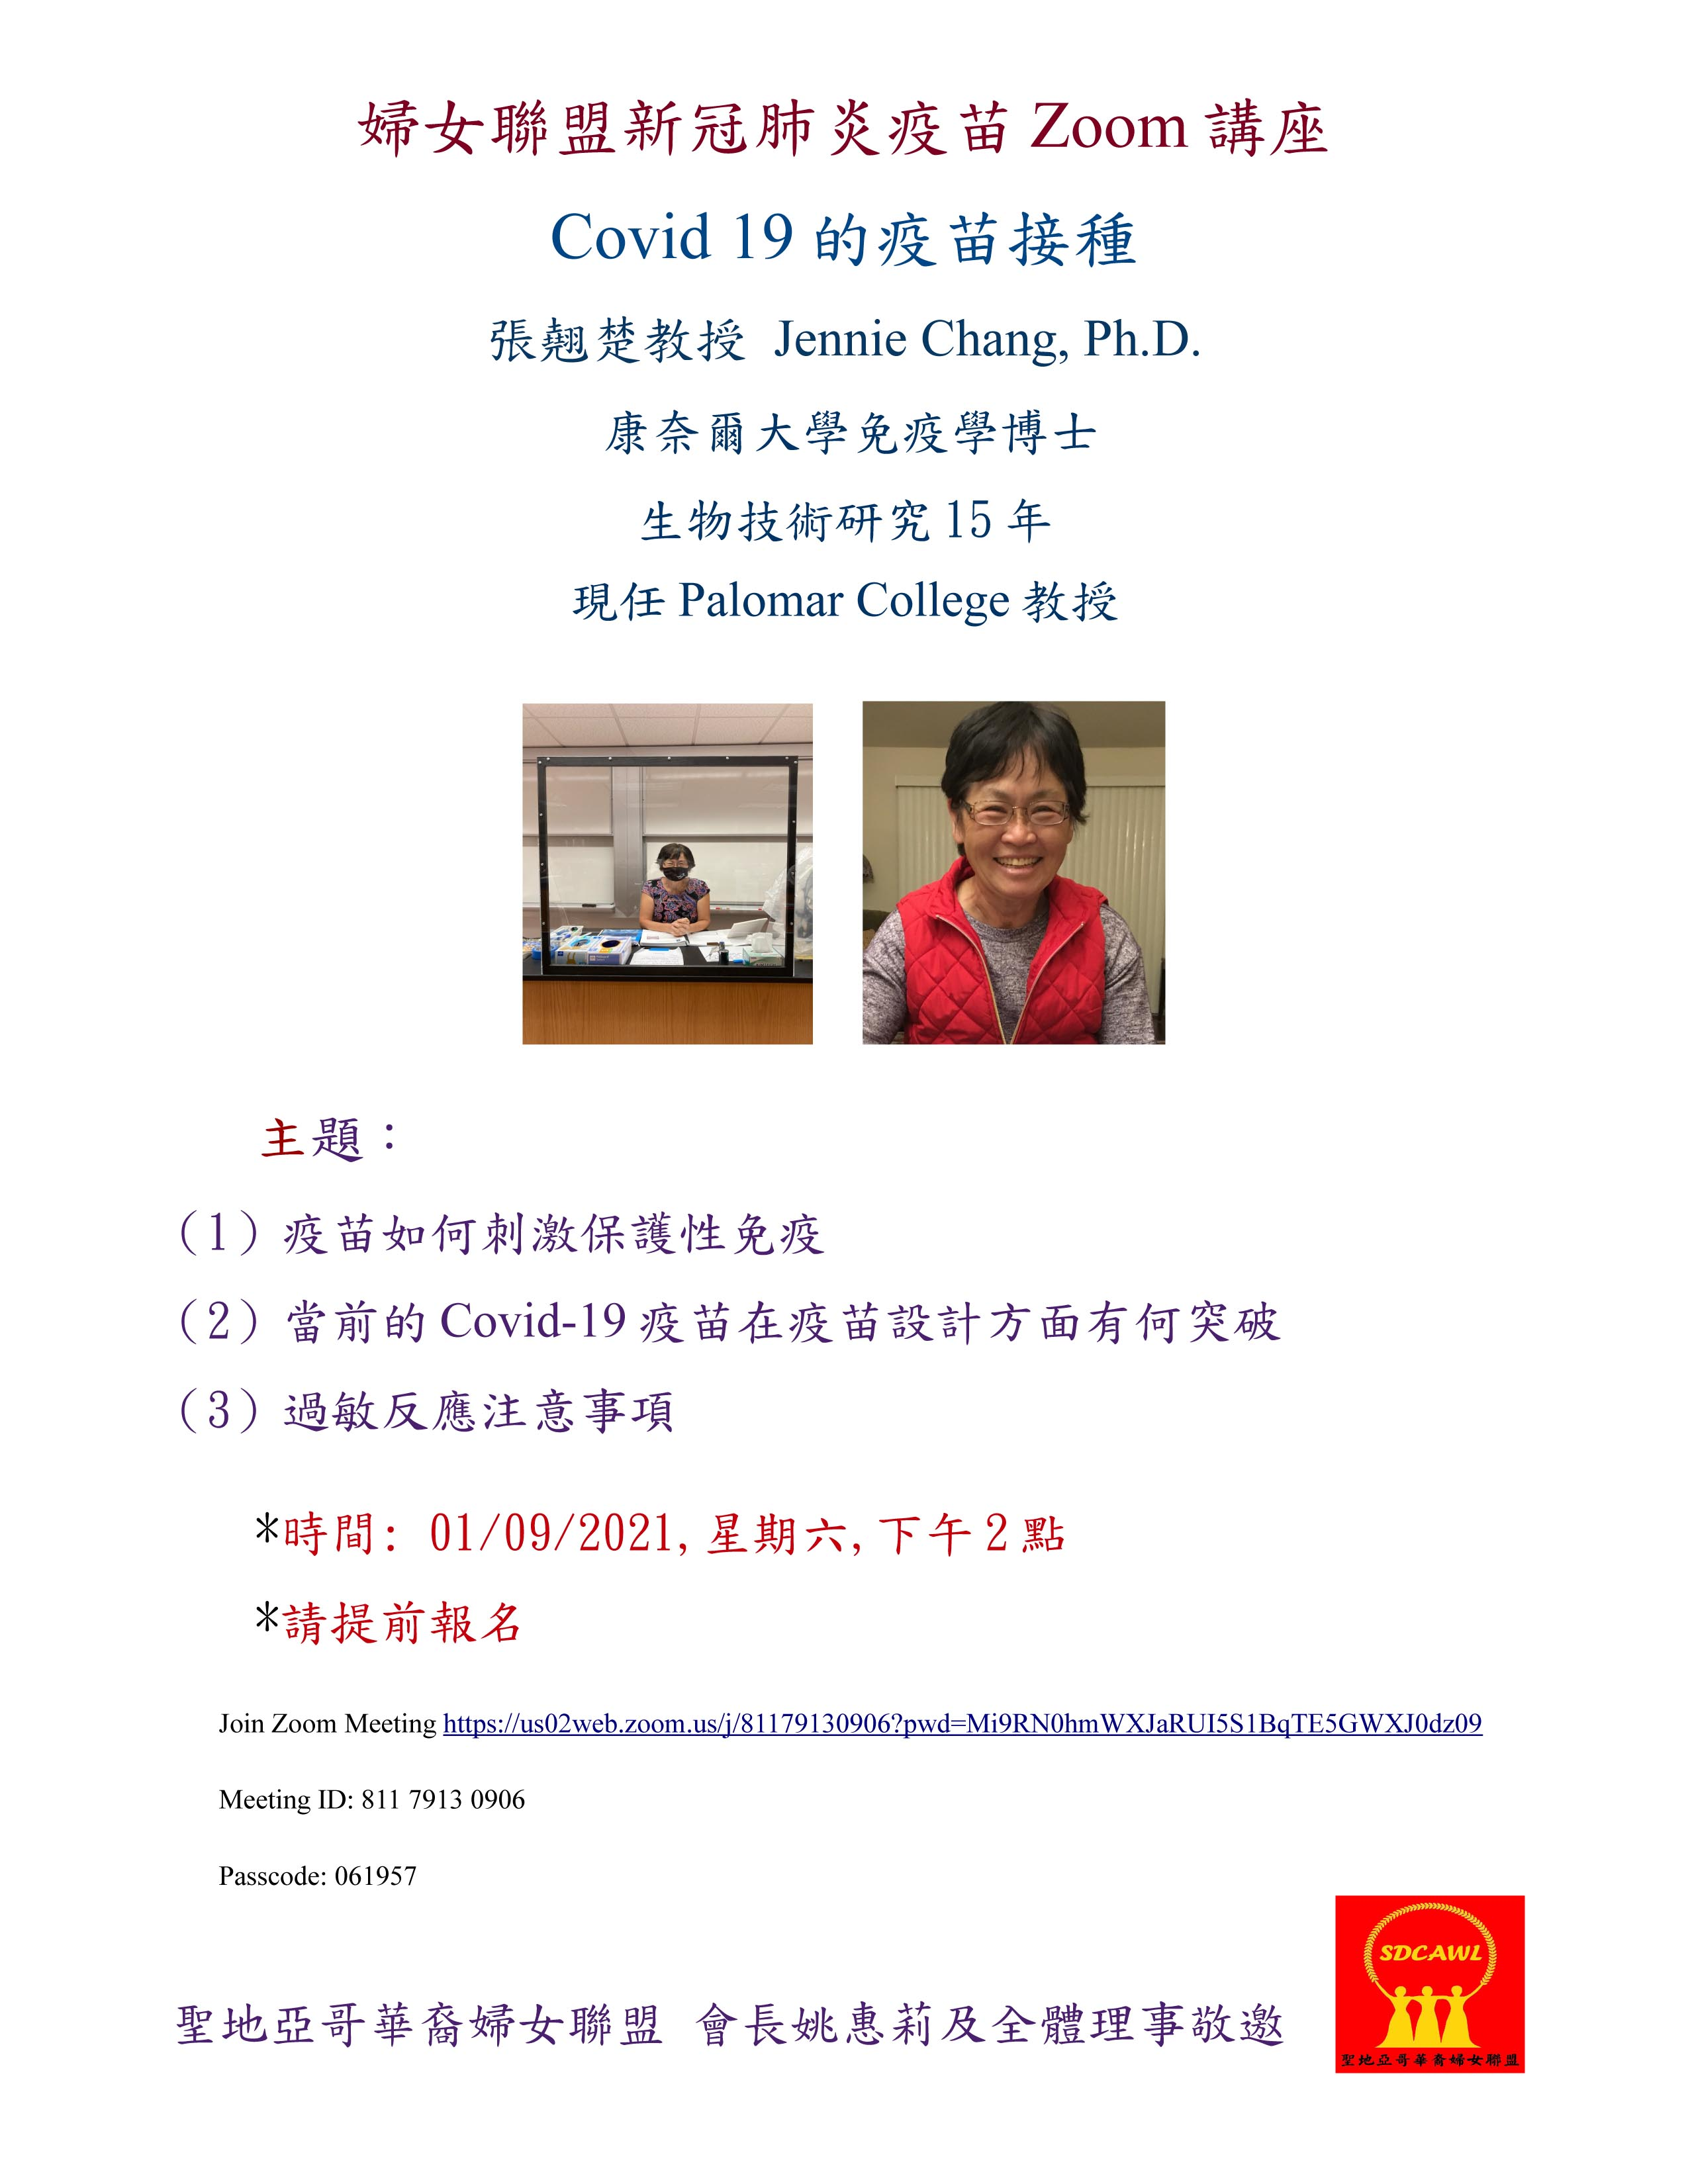 Covid 19 vaccination 講座010921Chinese2